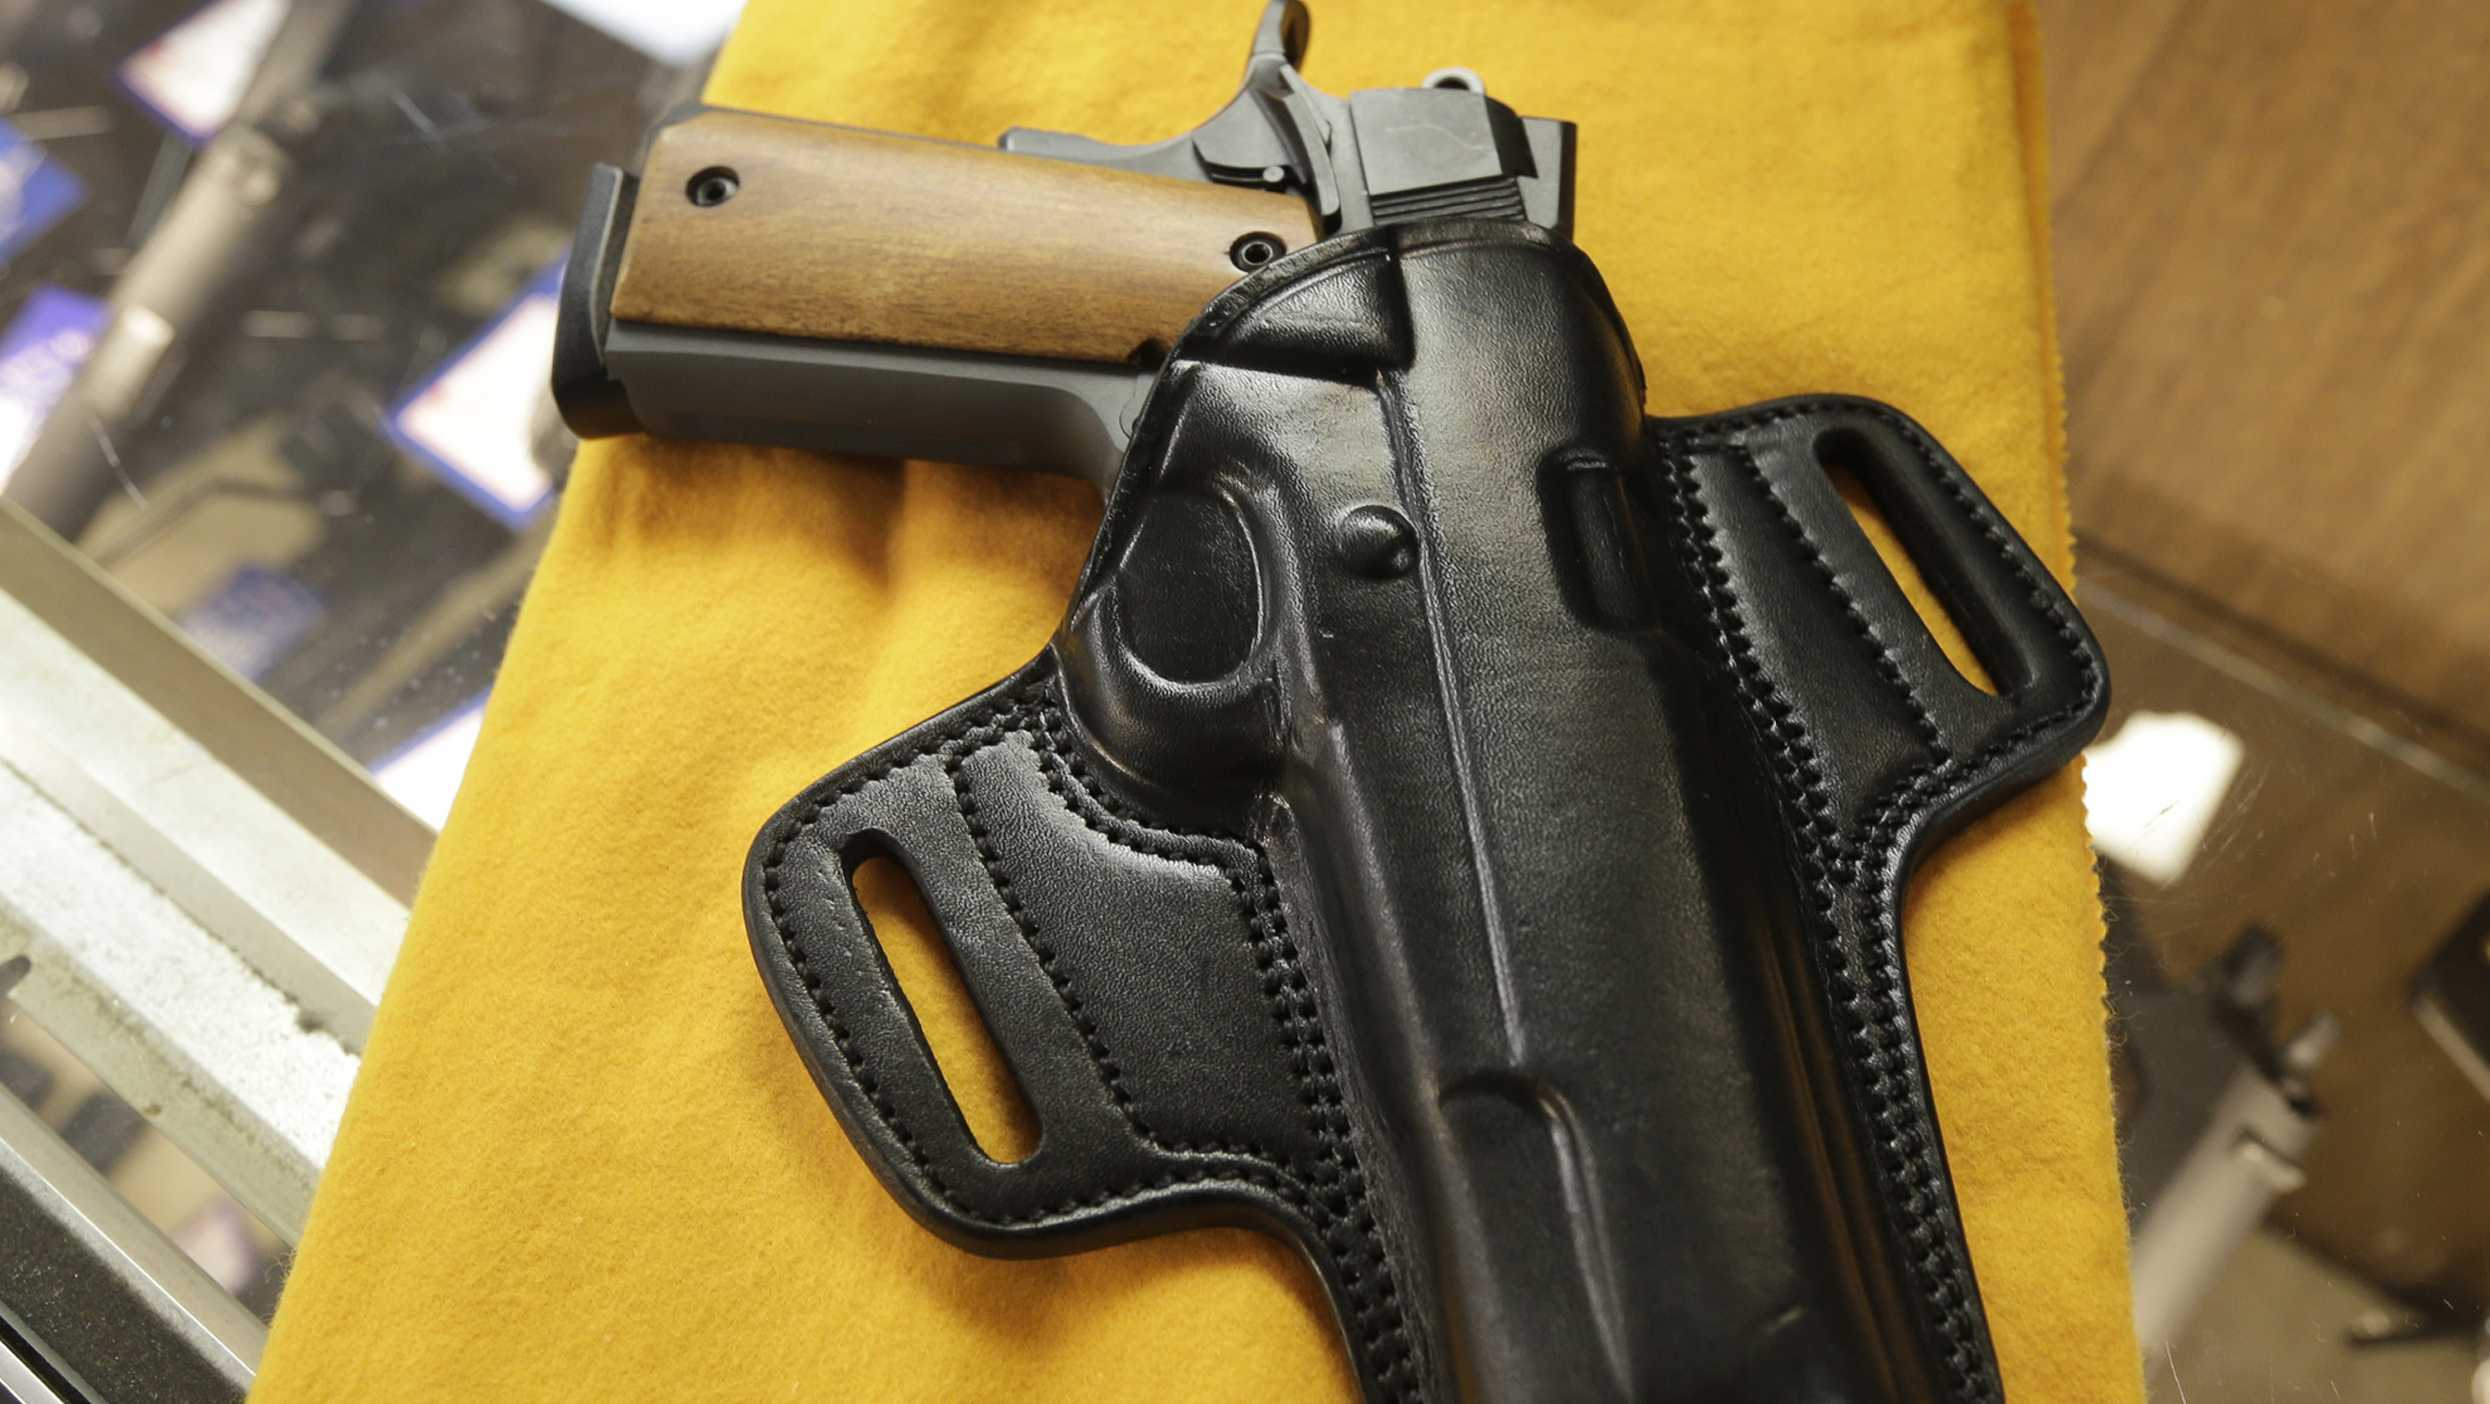 A semi-automatic handgun and a holster are displayed